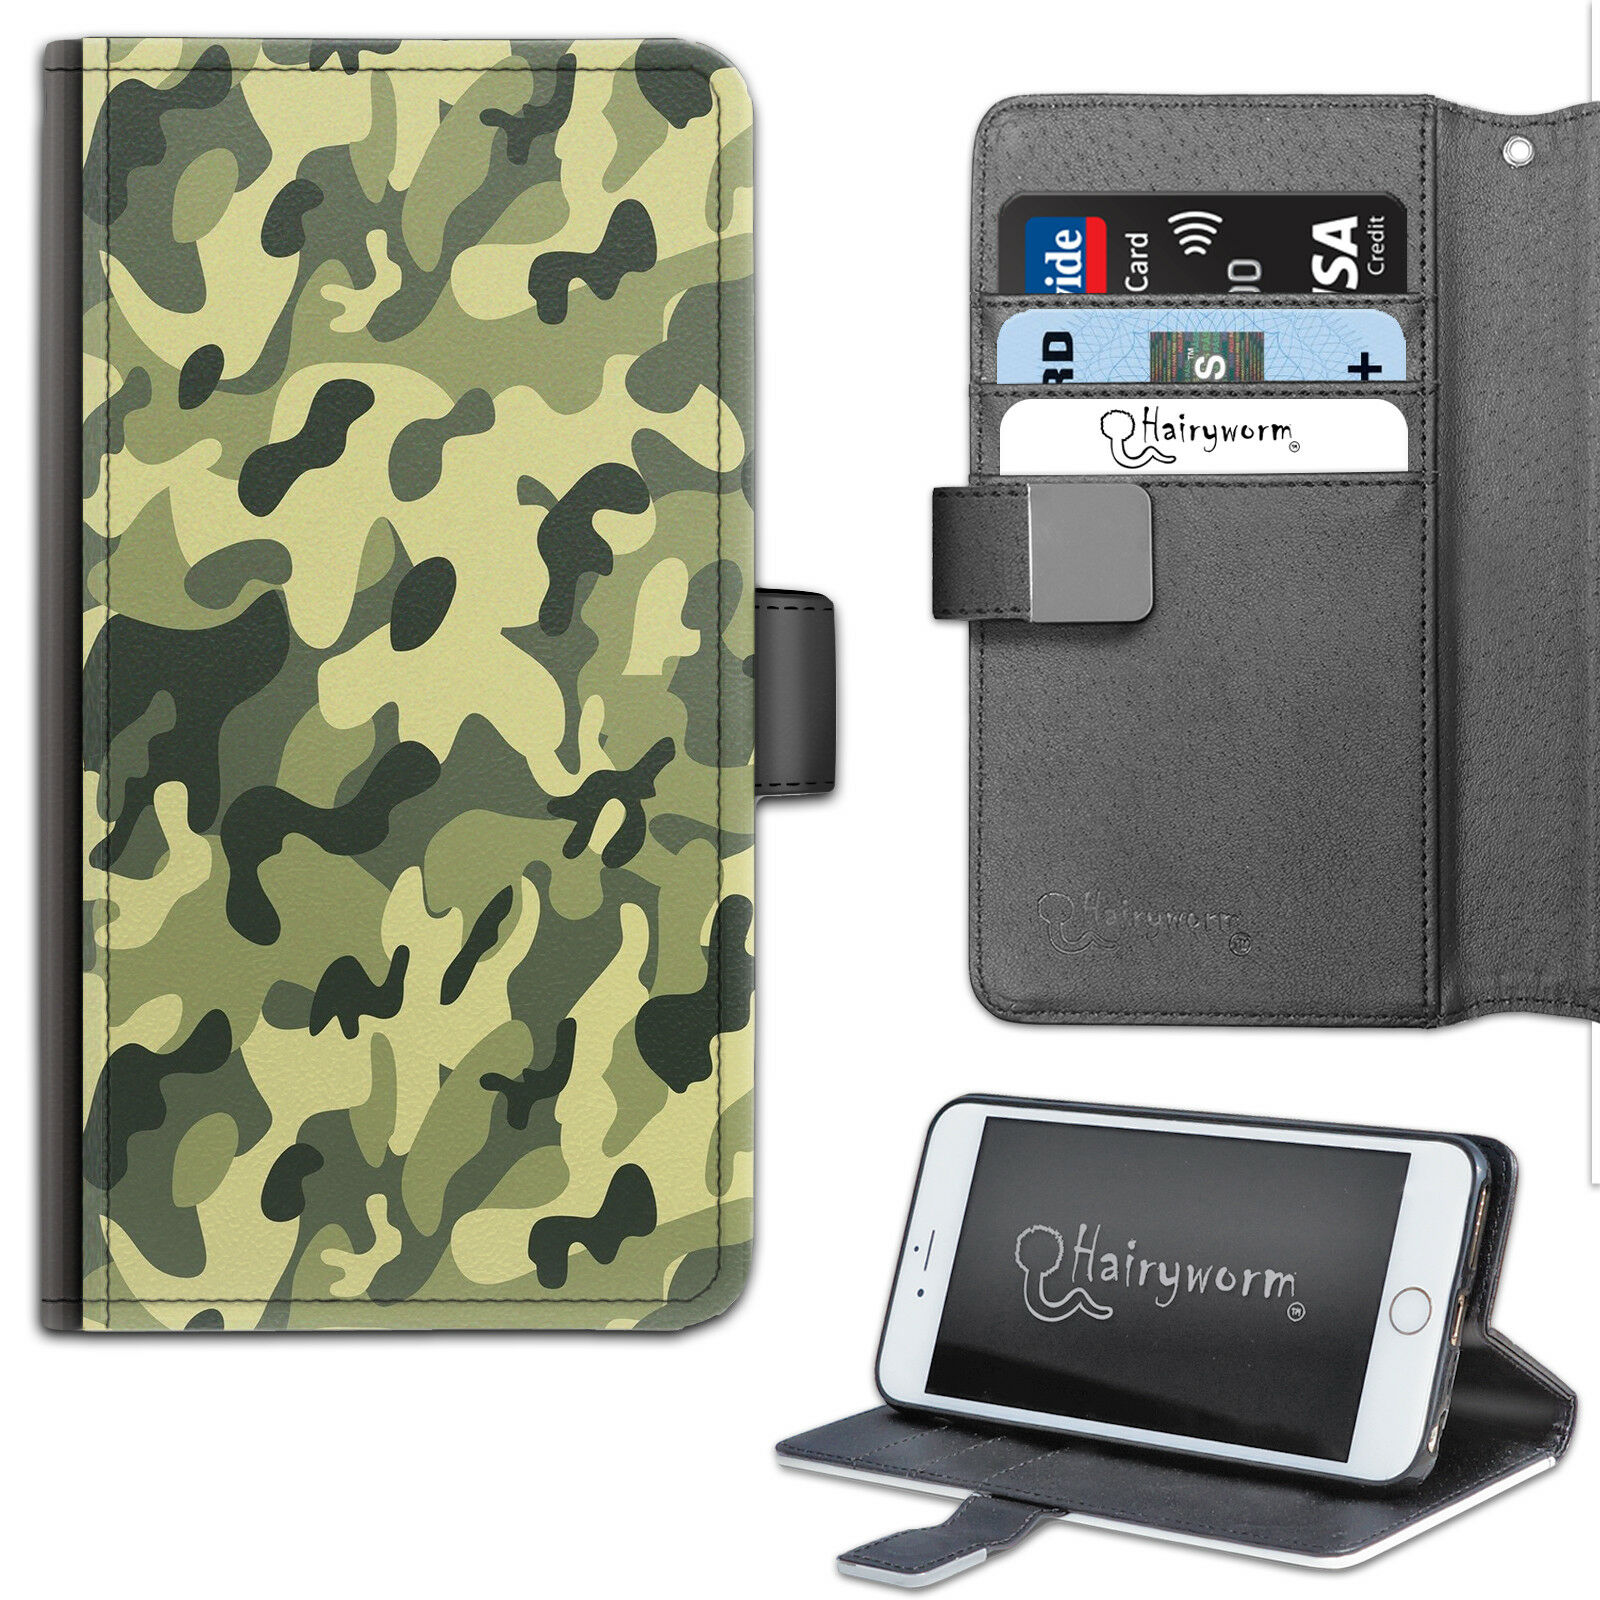 brand new 99c85 6f35e Details about HAIRYWORM GREEN CAMO PRINTED DELUXE LEATHER WALLET PHONE  CASE, FLIP PHONE CASE